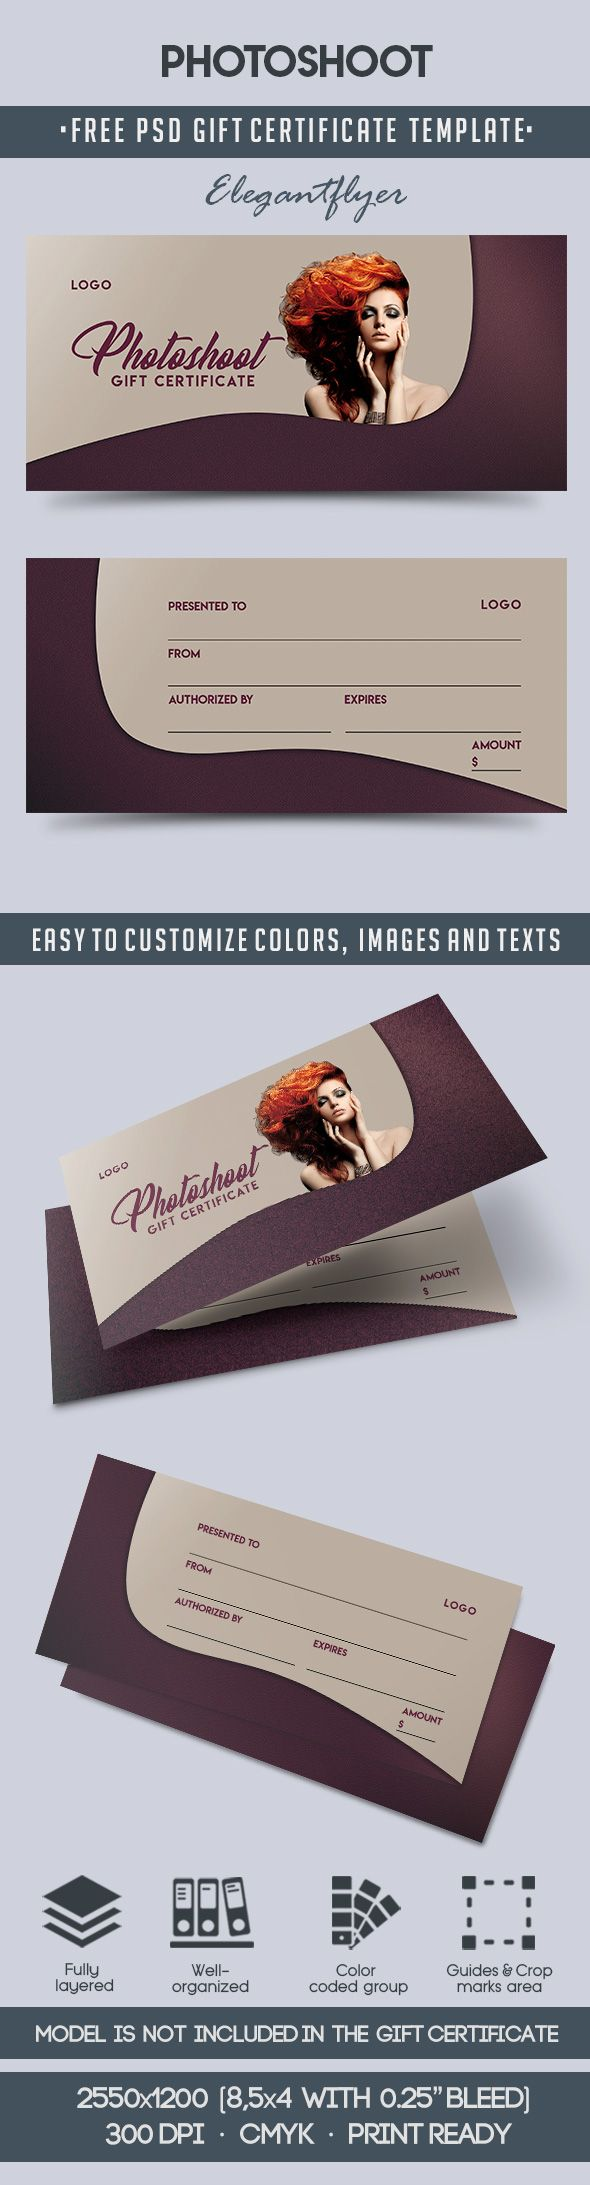 Photoshoot – Free Gift Certificate PSD Template